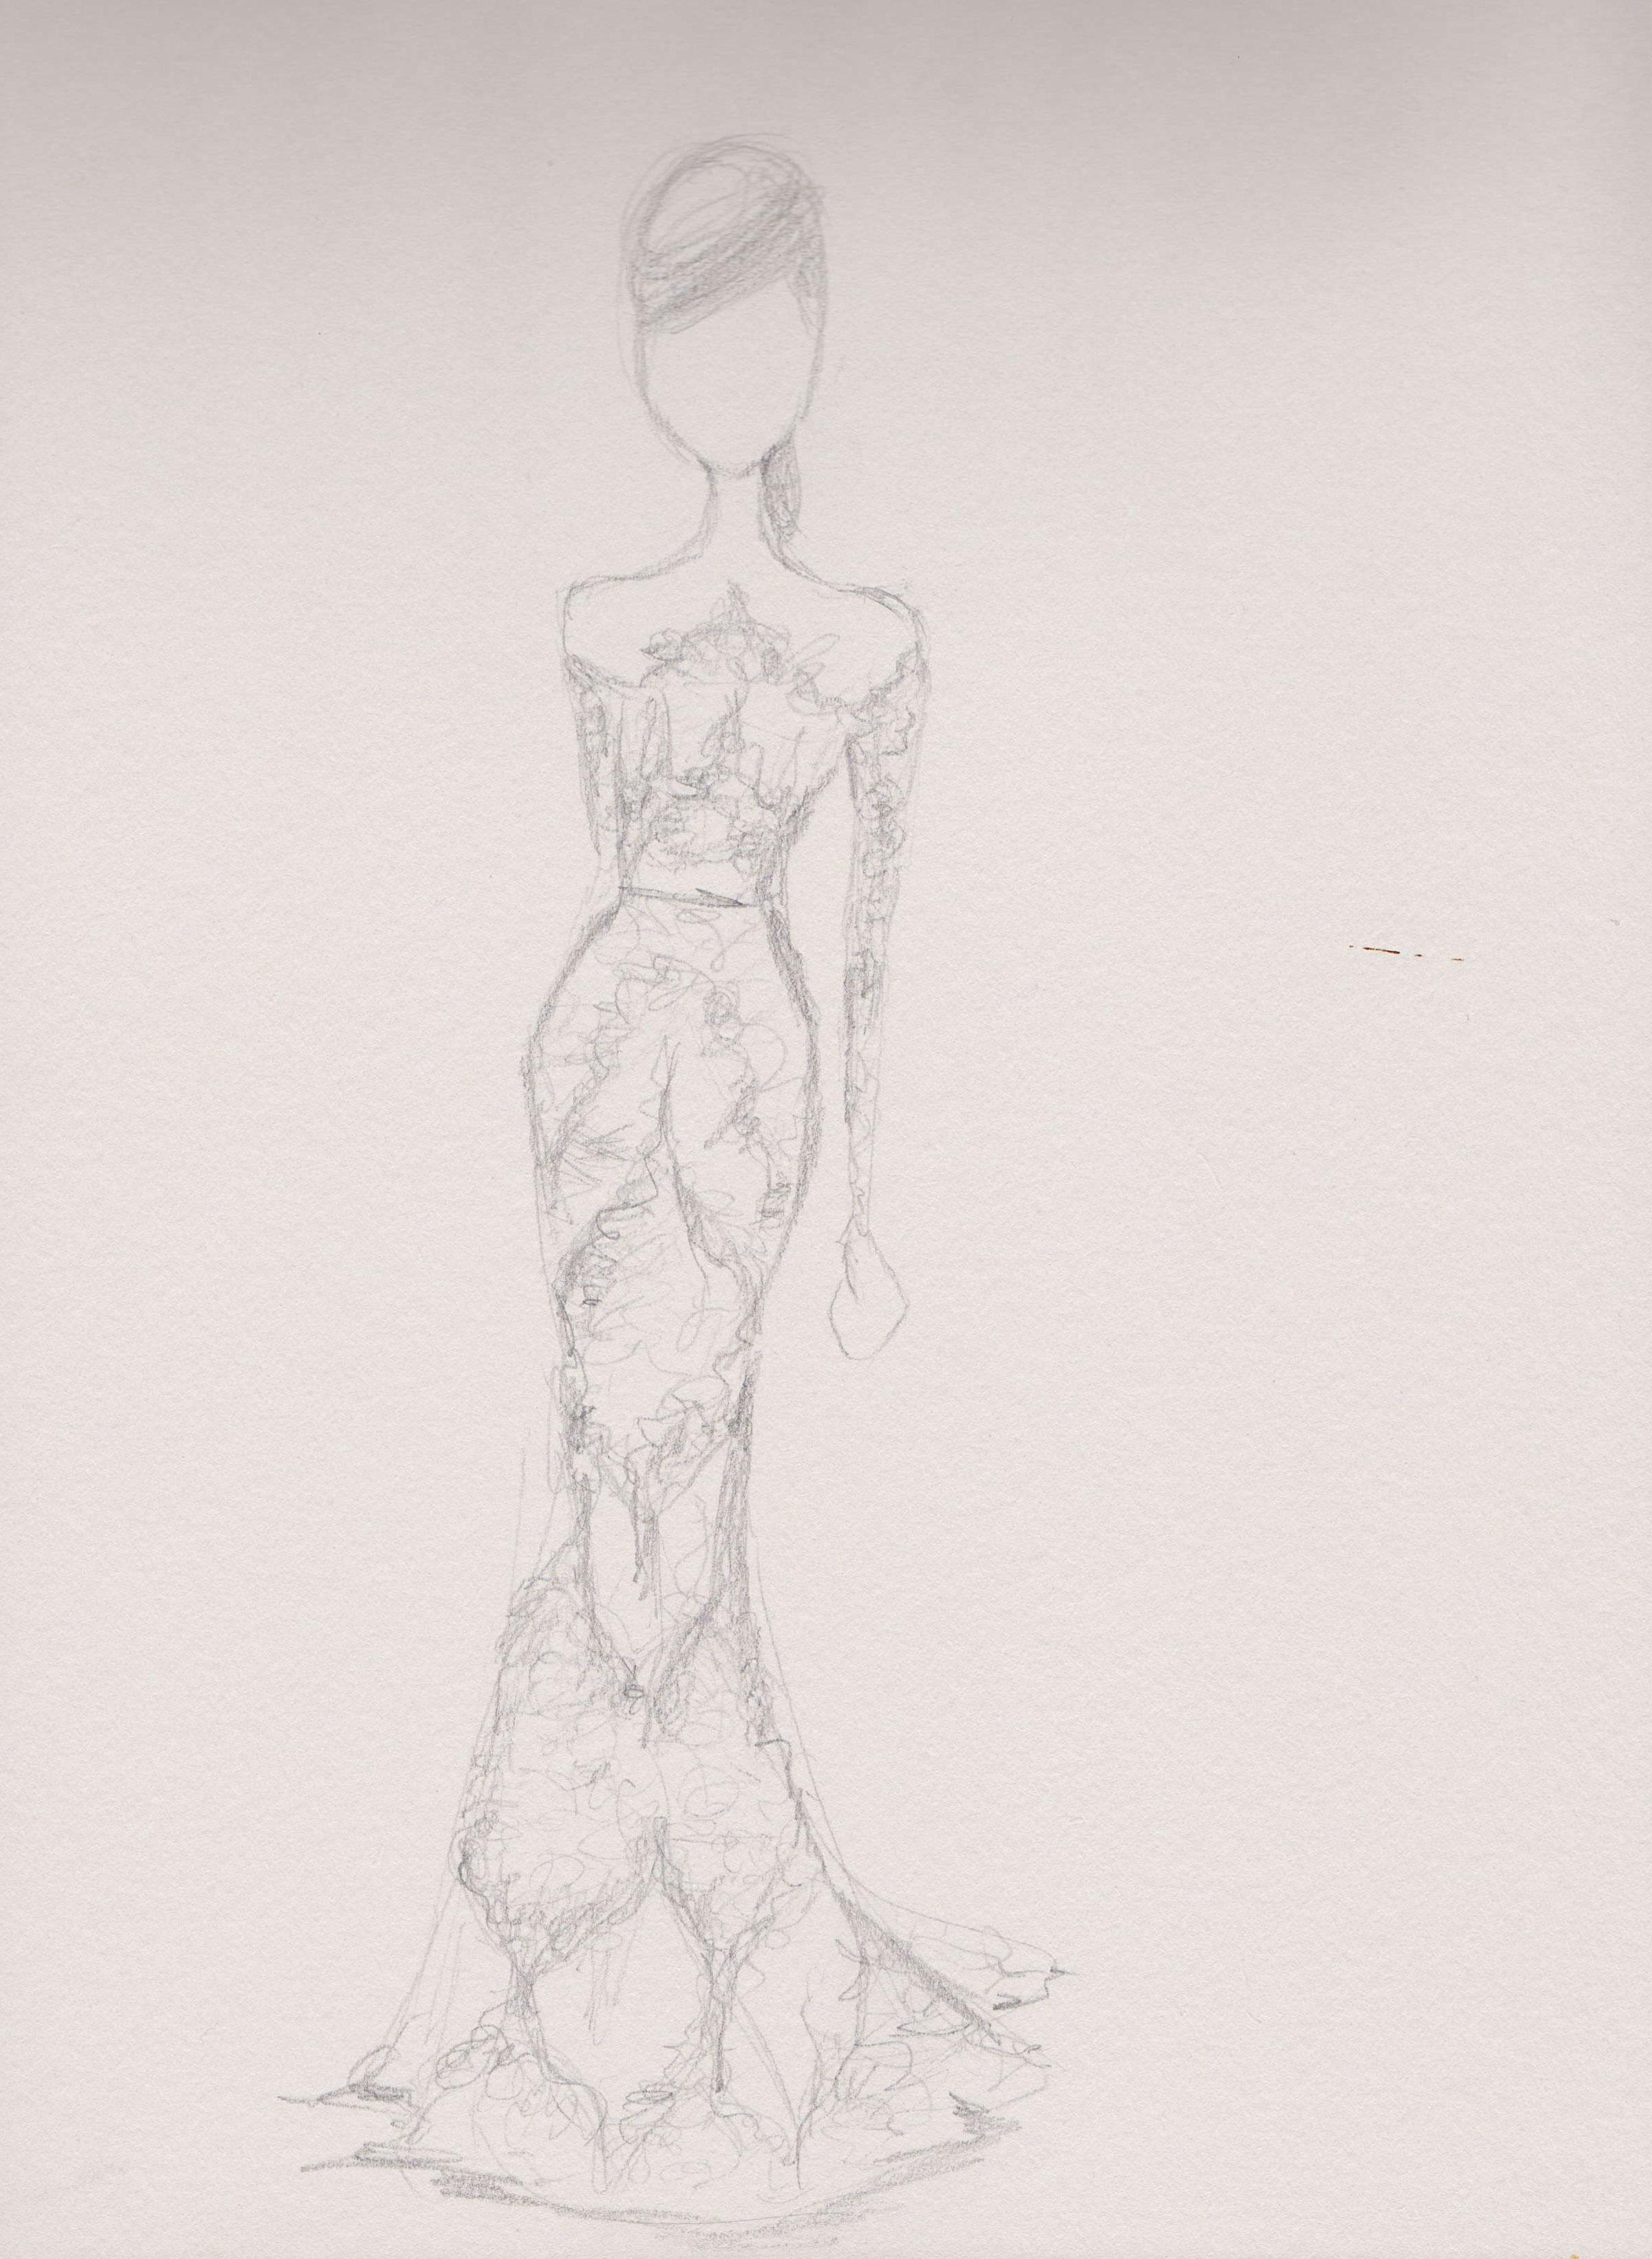 SKETCHES - Ethereal - image 3 - student project